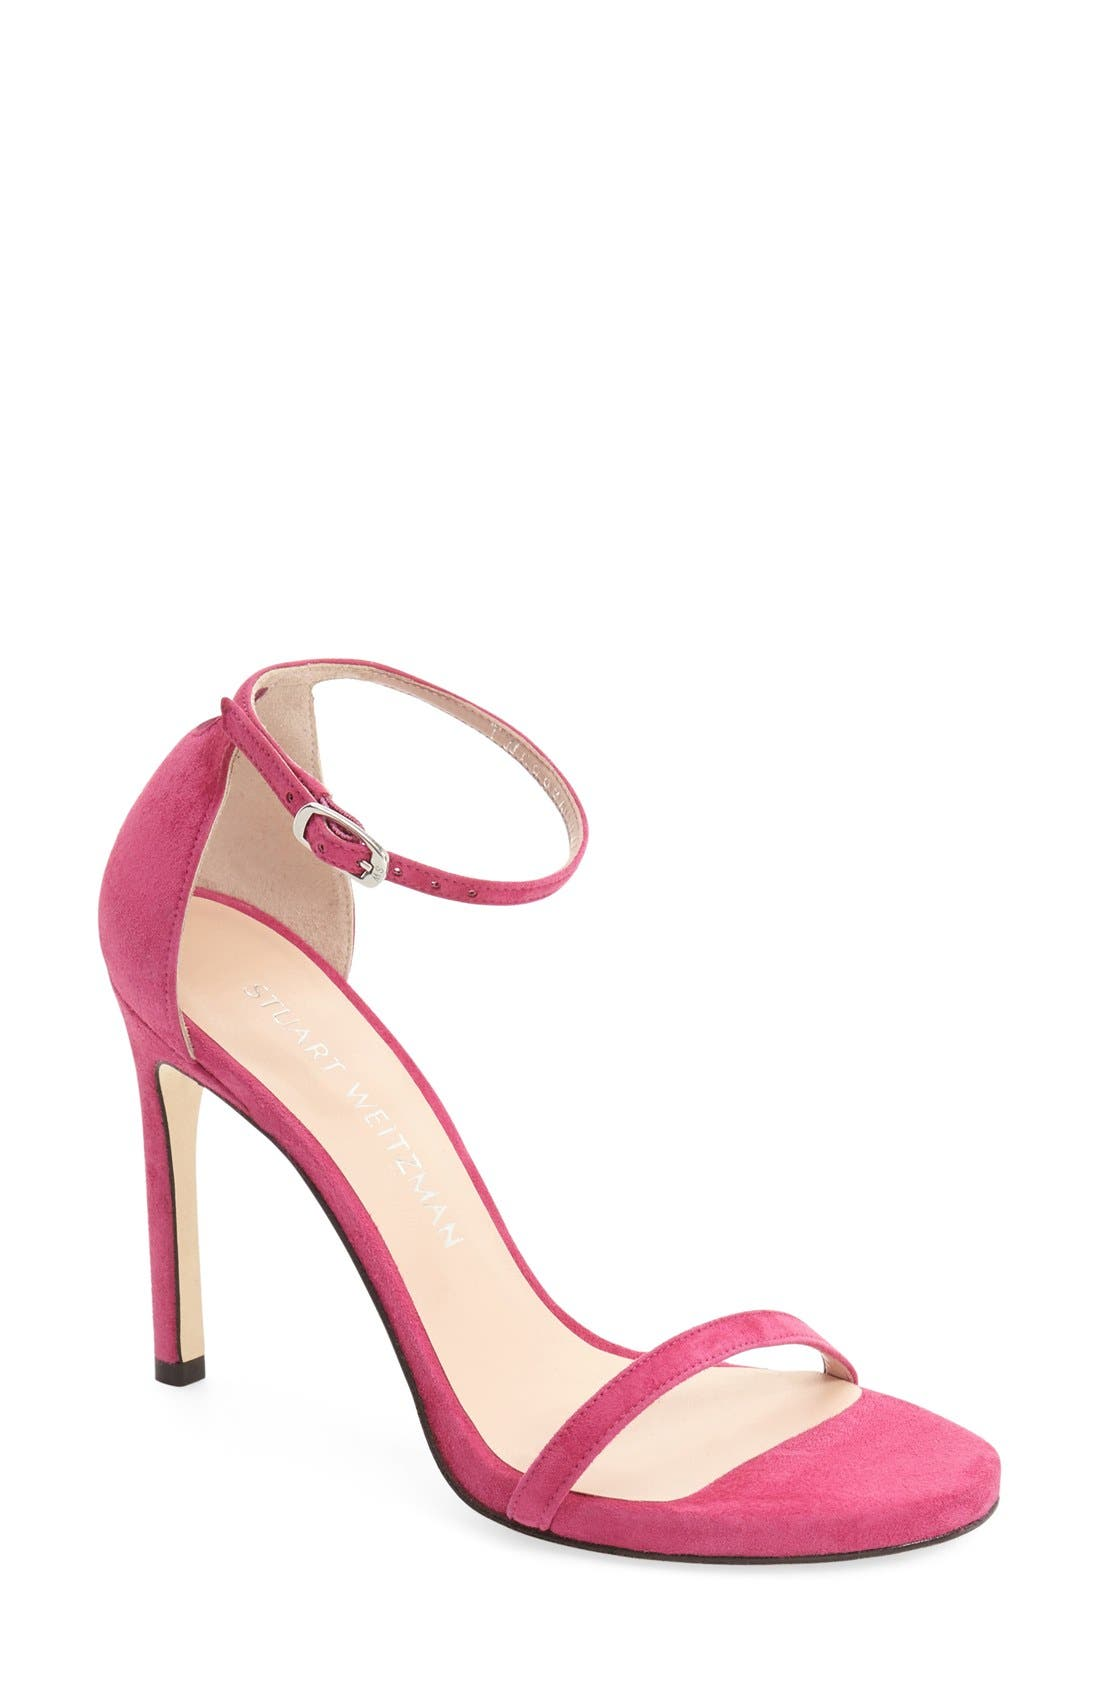 Nudistsong Ankle Strap Sandal,                             Main thumbnail 38, color,